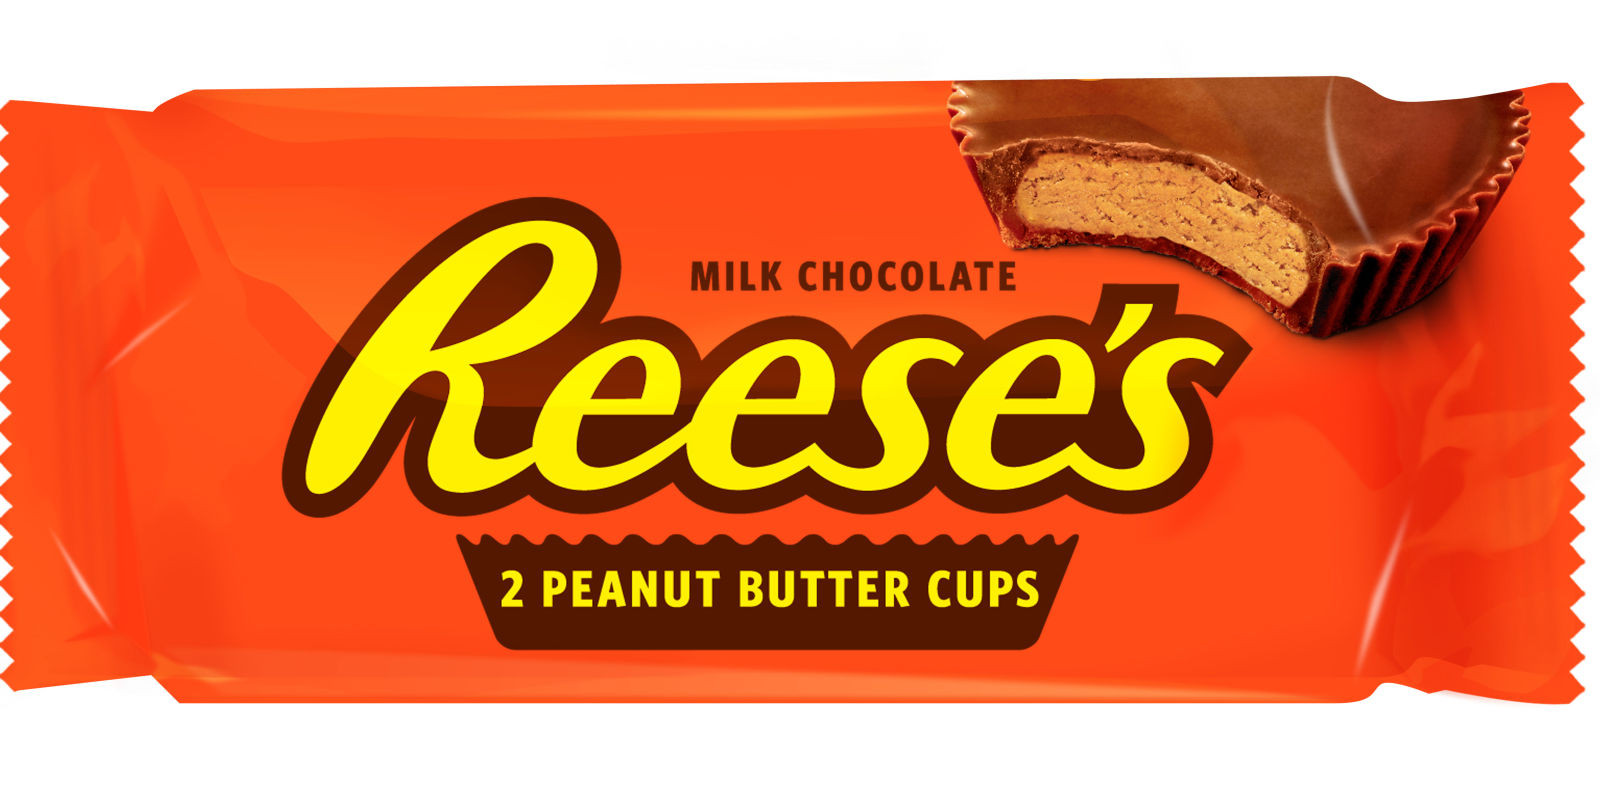 How Reese's Peanut Butter Cups Explains Culture, Purpose ...